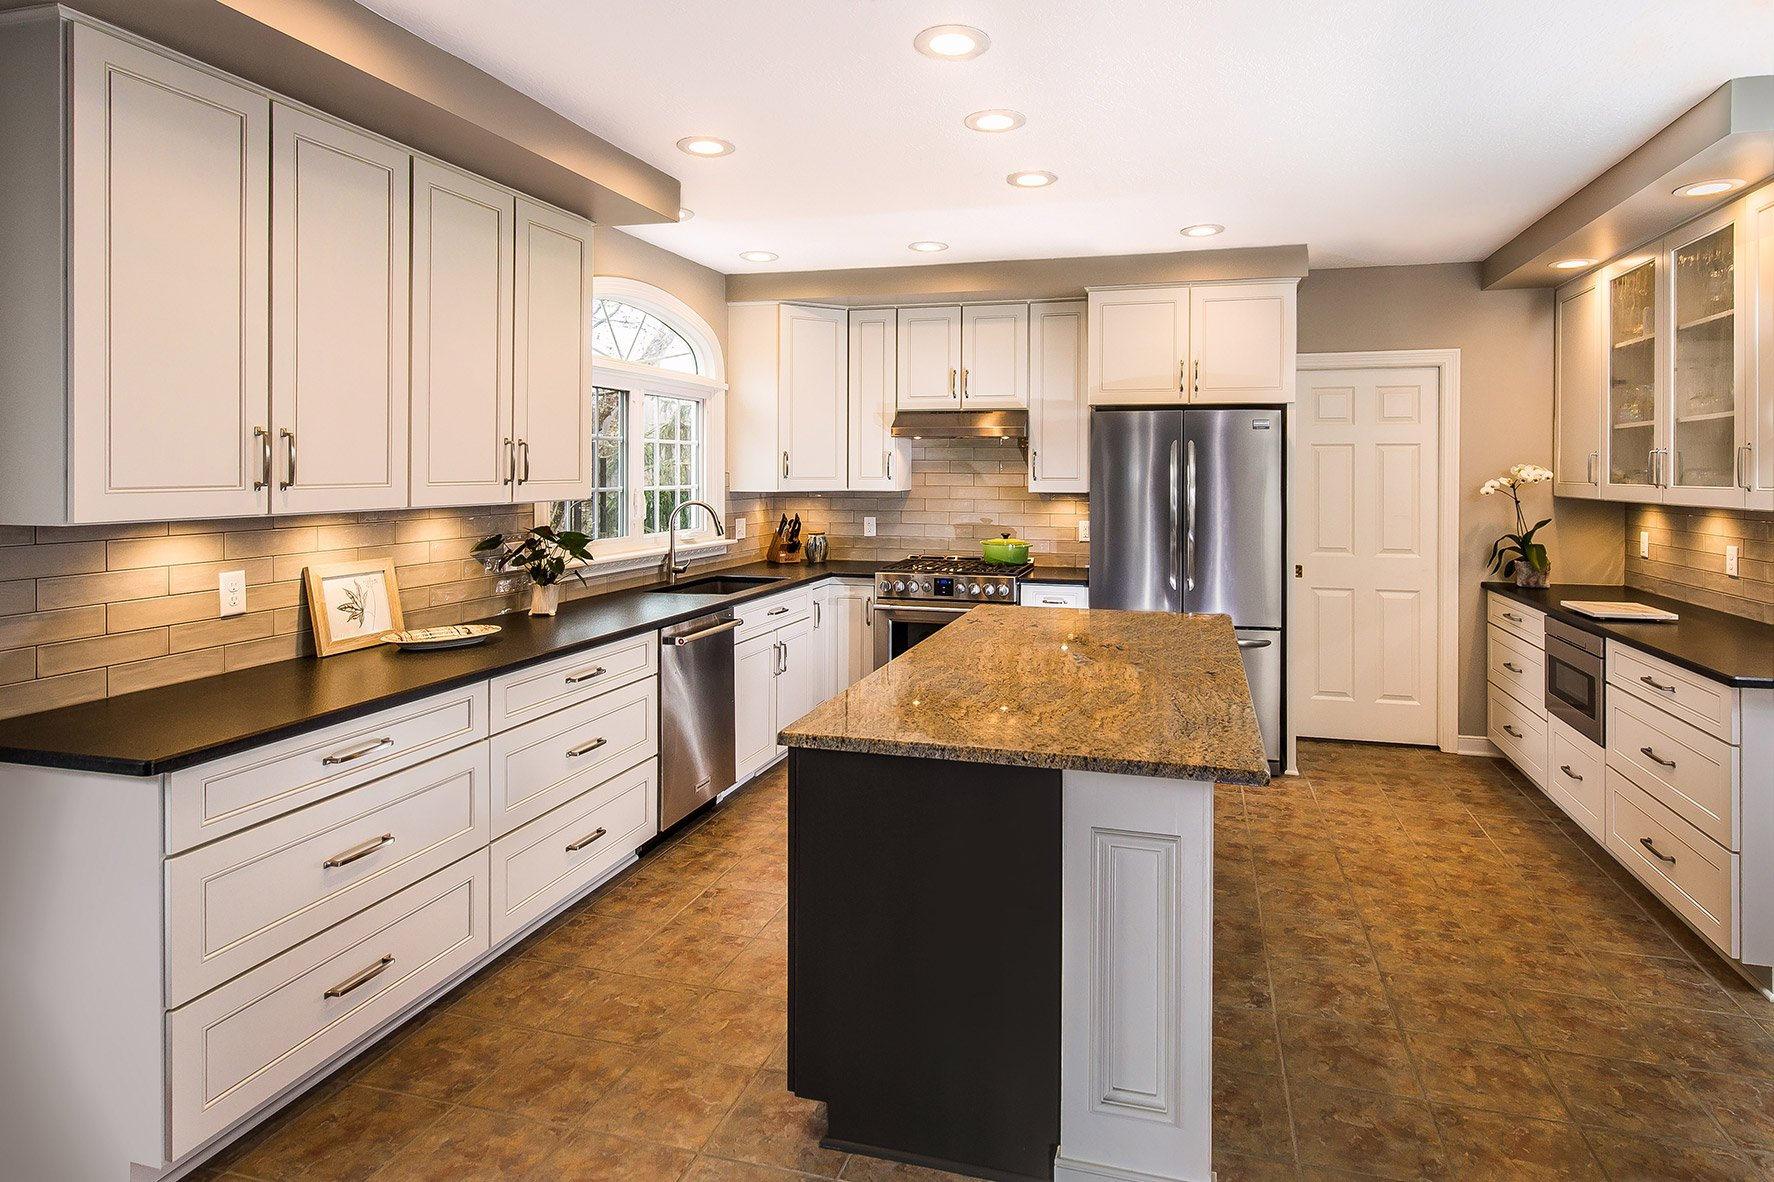 A refaced kitchen with new white cabinet doors